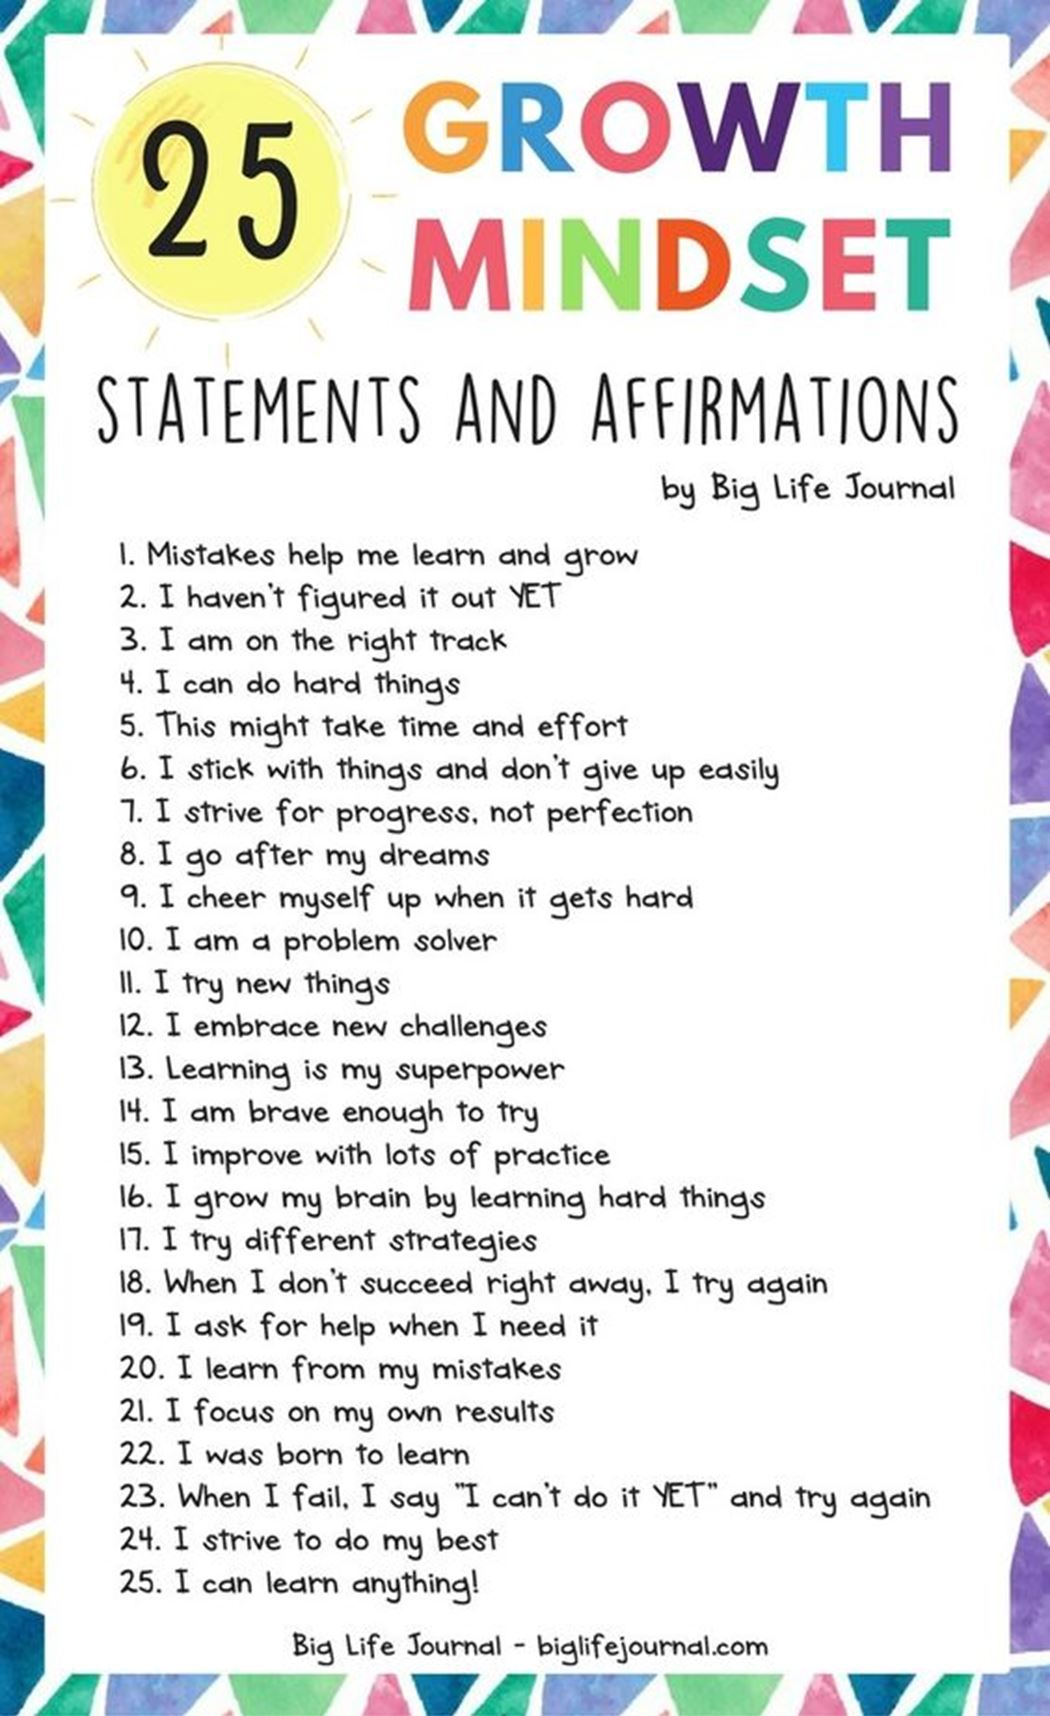 Mindfulness statements and affirmations.jpg